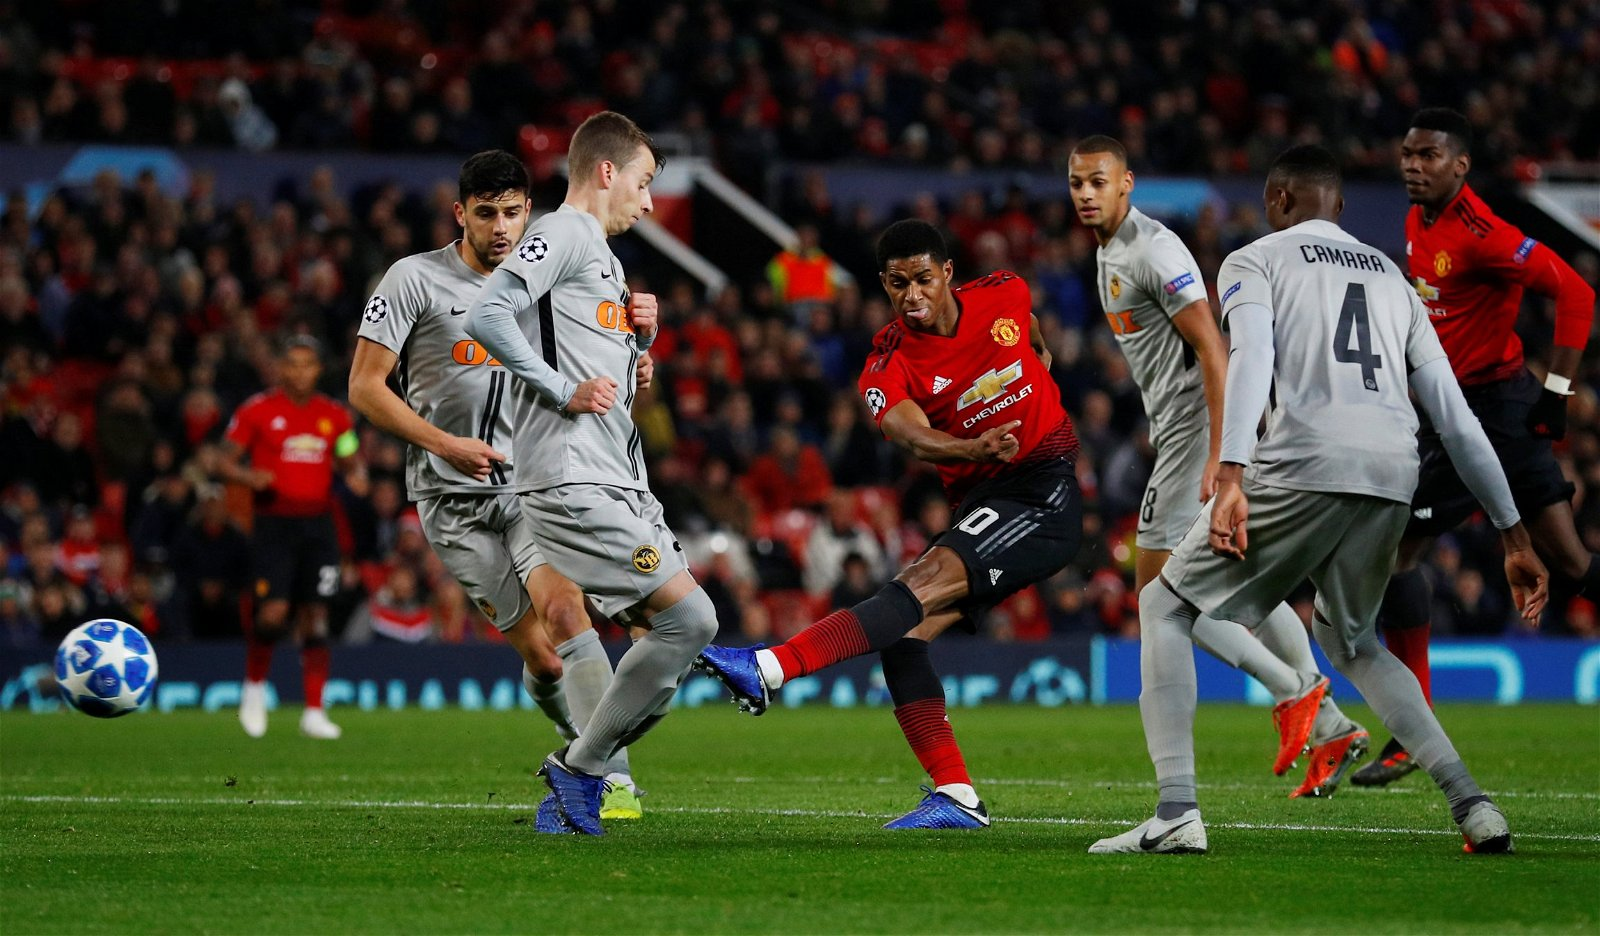 Manchester United's Marcus Rashford shoots at goal v BSC Young Boys